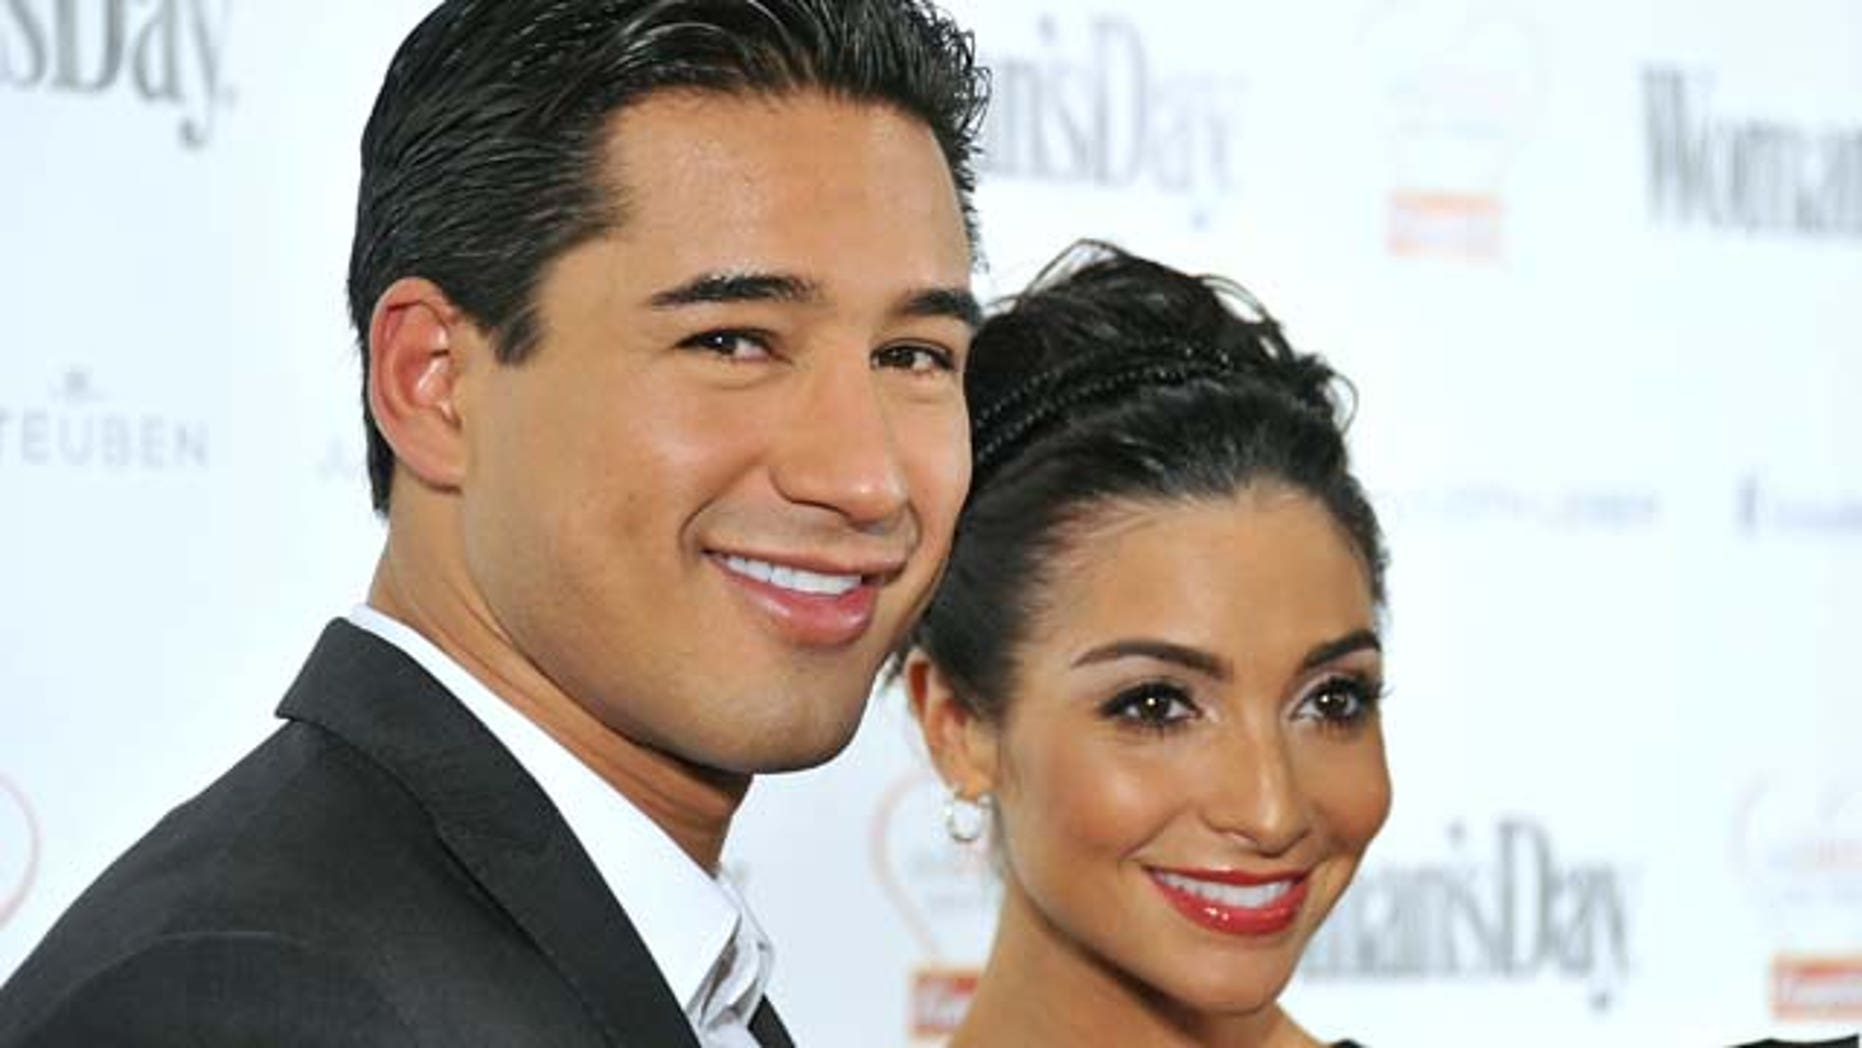 NEW YORK, NY - FEBRUARY 08:  Actor and television personality Mario Lopez and girlfriend Courtney Mazza attend the Woman's Day 8th Annual Red Dress awards at Jazz at Lincoln Center on February 8, 2011 in New York City.  (Photo by Mike Coppola/Getty Images)